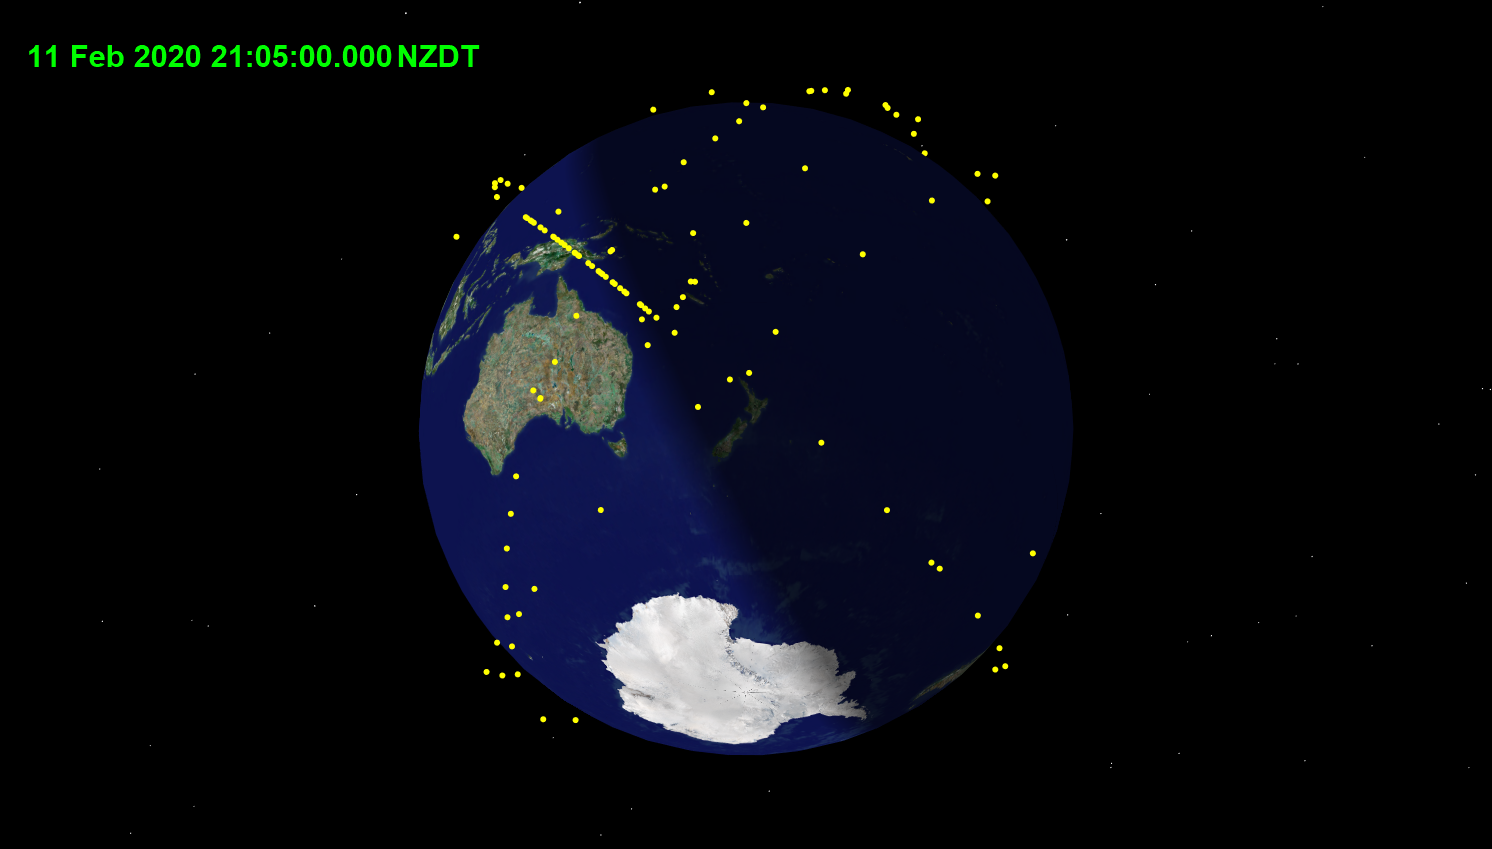 Featured image: Update on how to see the Space-X satellite chains from NZ